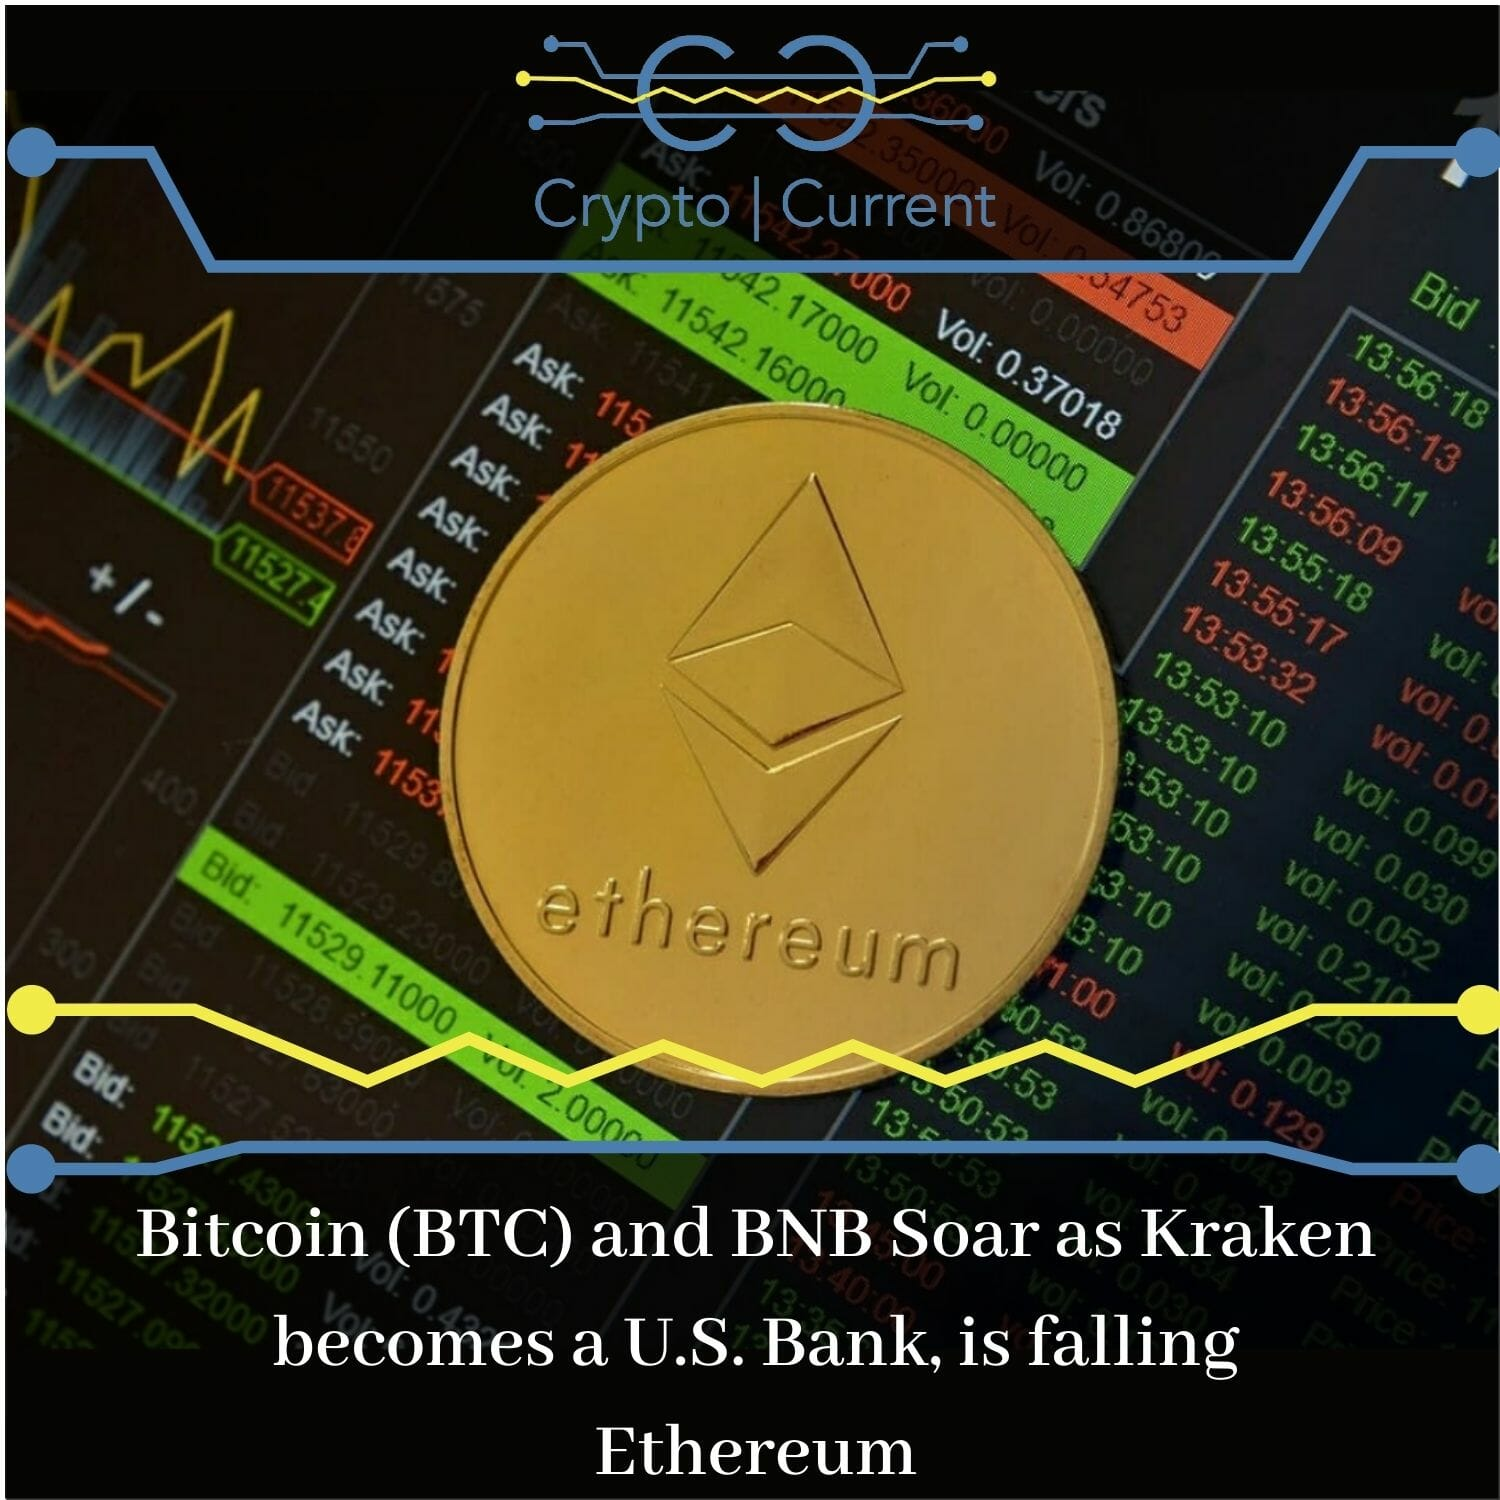 Bitcoin (BTC) and BNB Soar as Kraken Becomes a U.S. Bank, is Falling Ethereum Fees Negative for ETH?